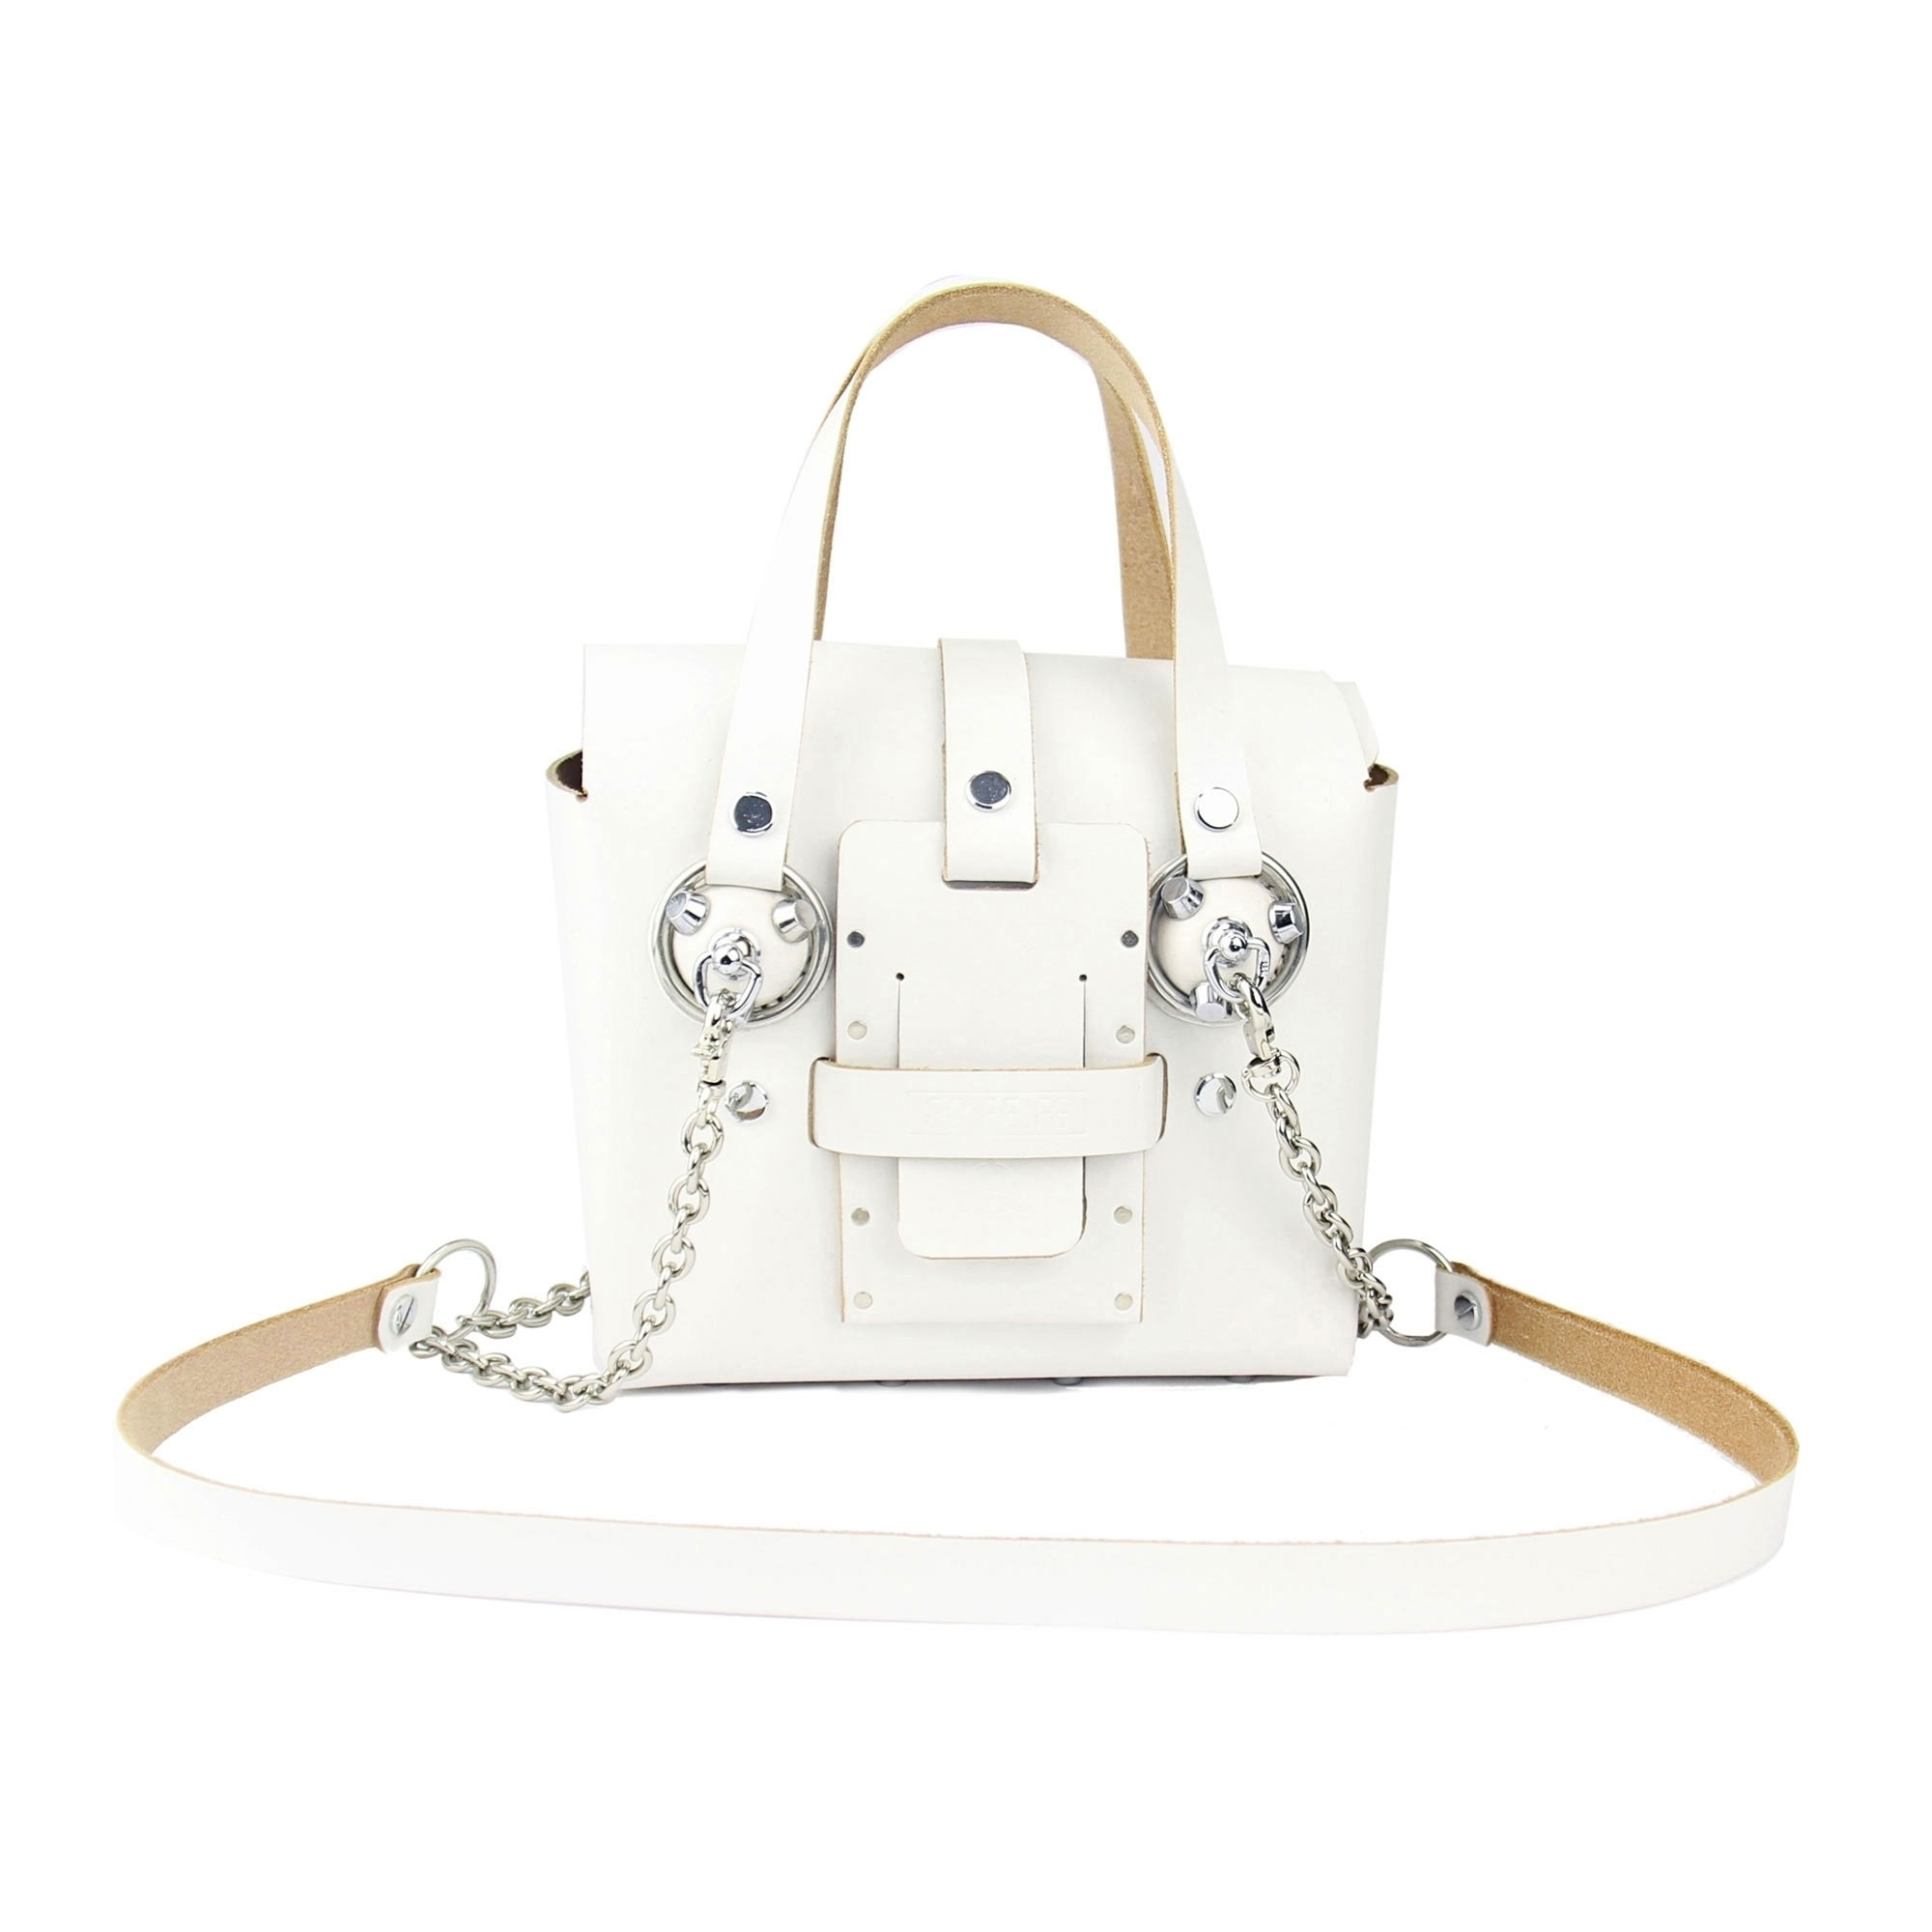 b3326c3f0c GOFEFE Small White   Silver Studded Leather Bag - Accessories from ...